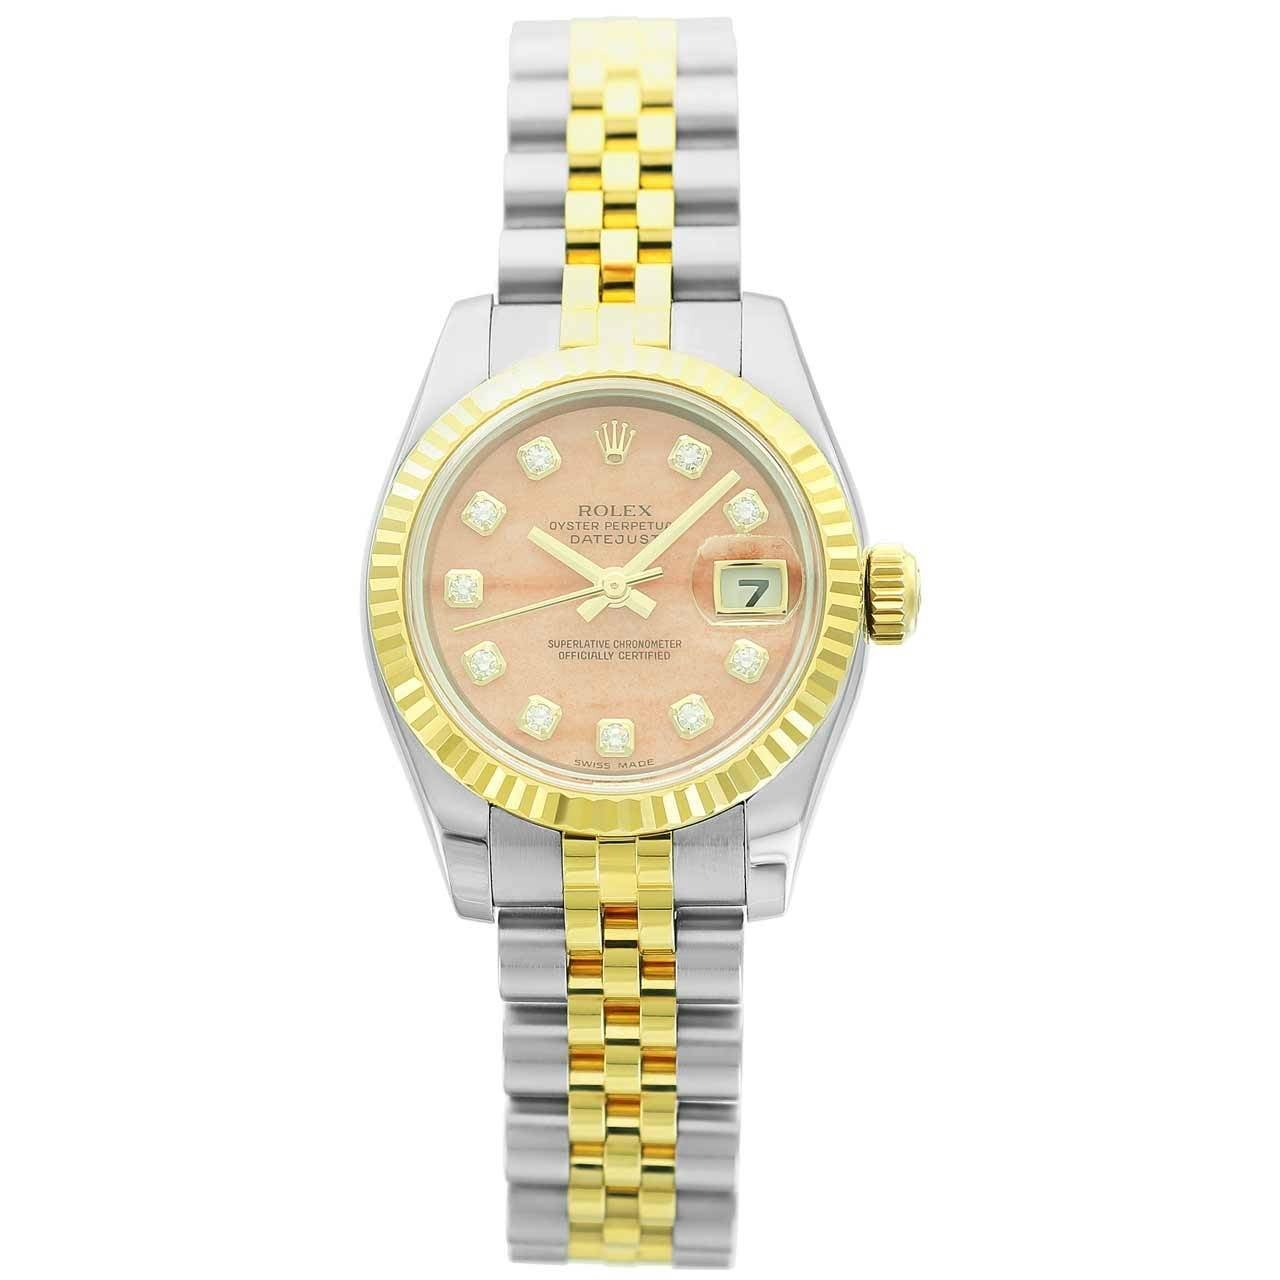 Rolex Lady's Two Color Gold Datejust Coral Diamond Dial Wristwatch Ref 179173